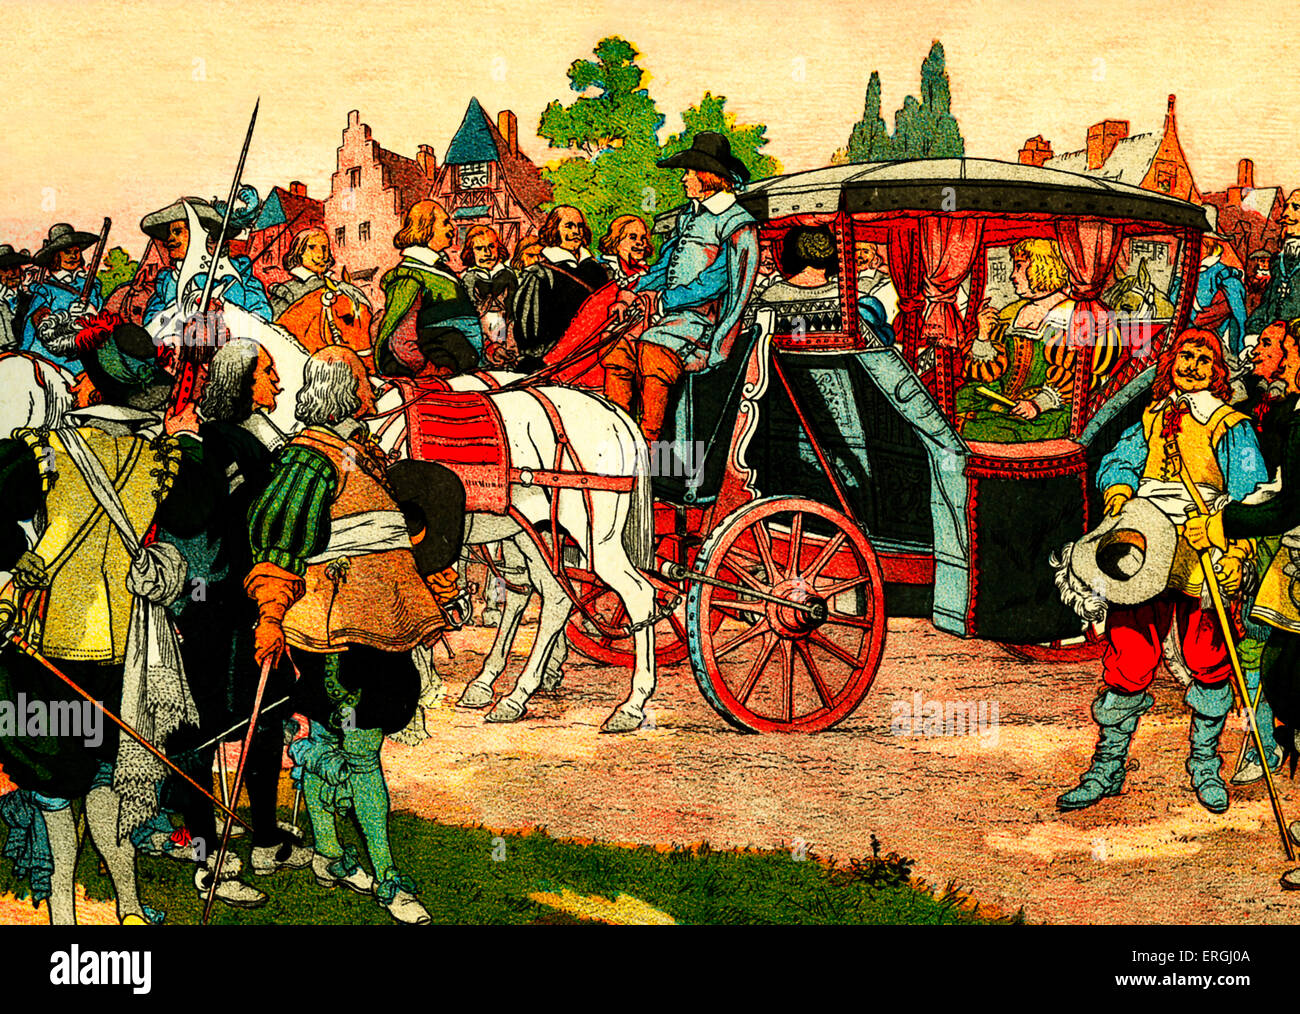 Marie de' Medici 's journey to the Netherlands. From illustration by Eugene Courboin, c. 1912.  Queen consort - Stock Image